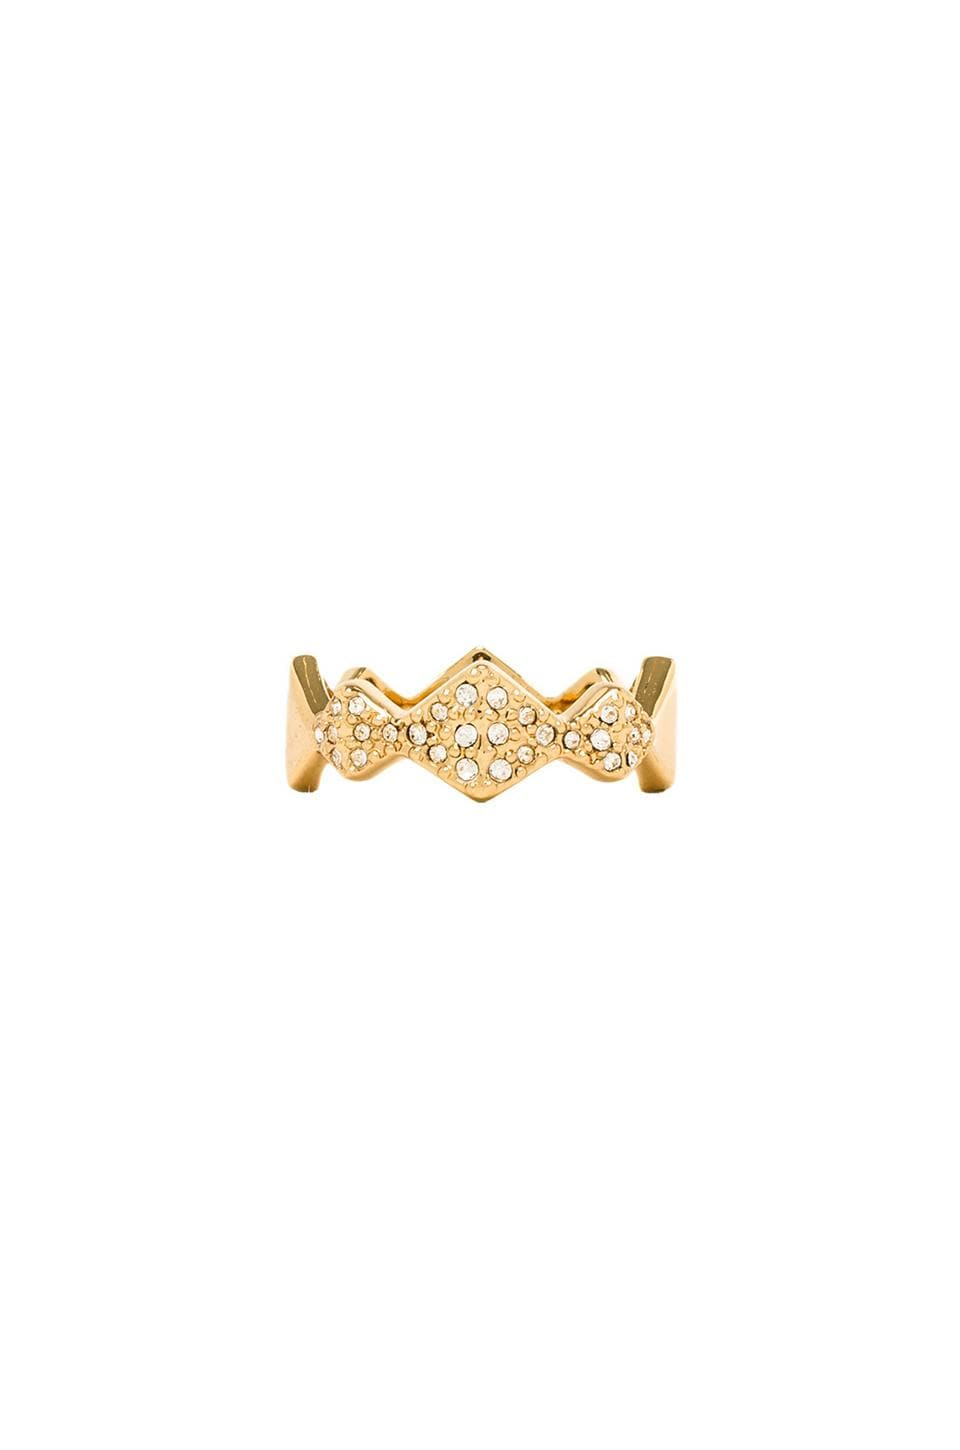 Trina Turk Tangier Ring in Gold